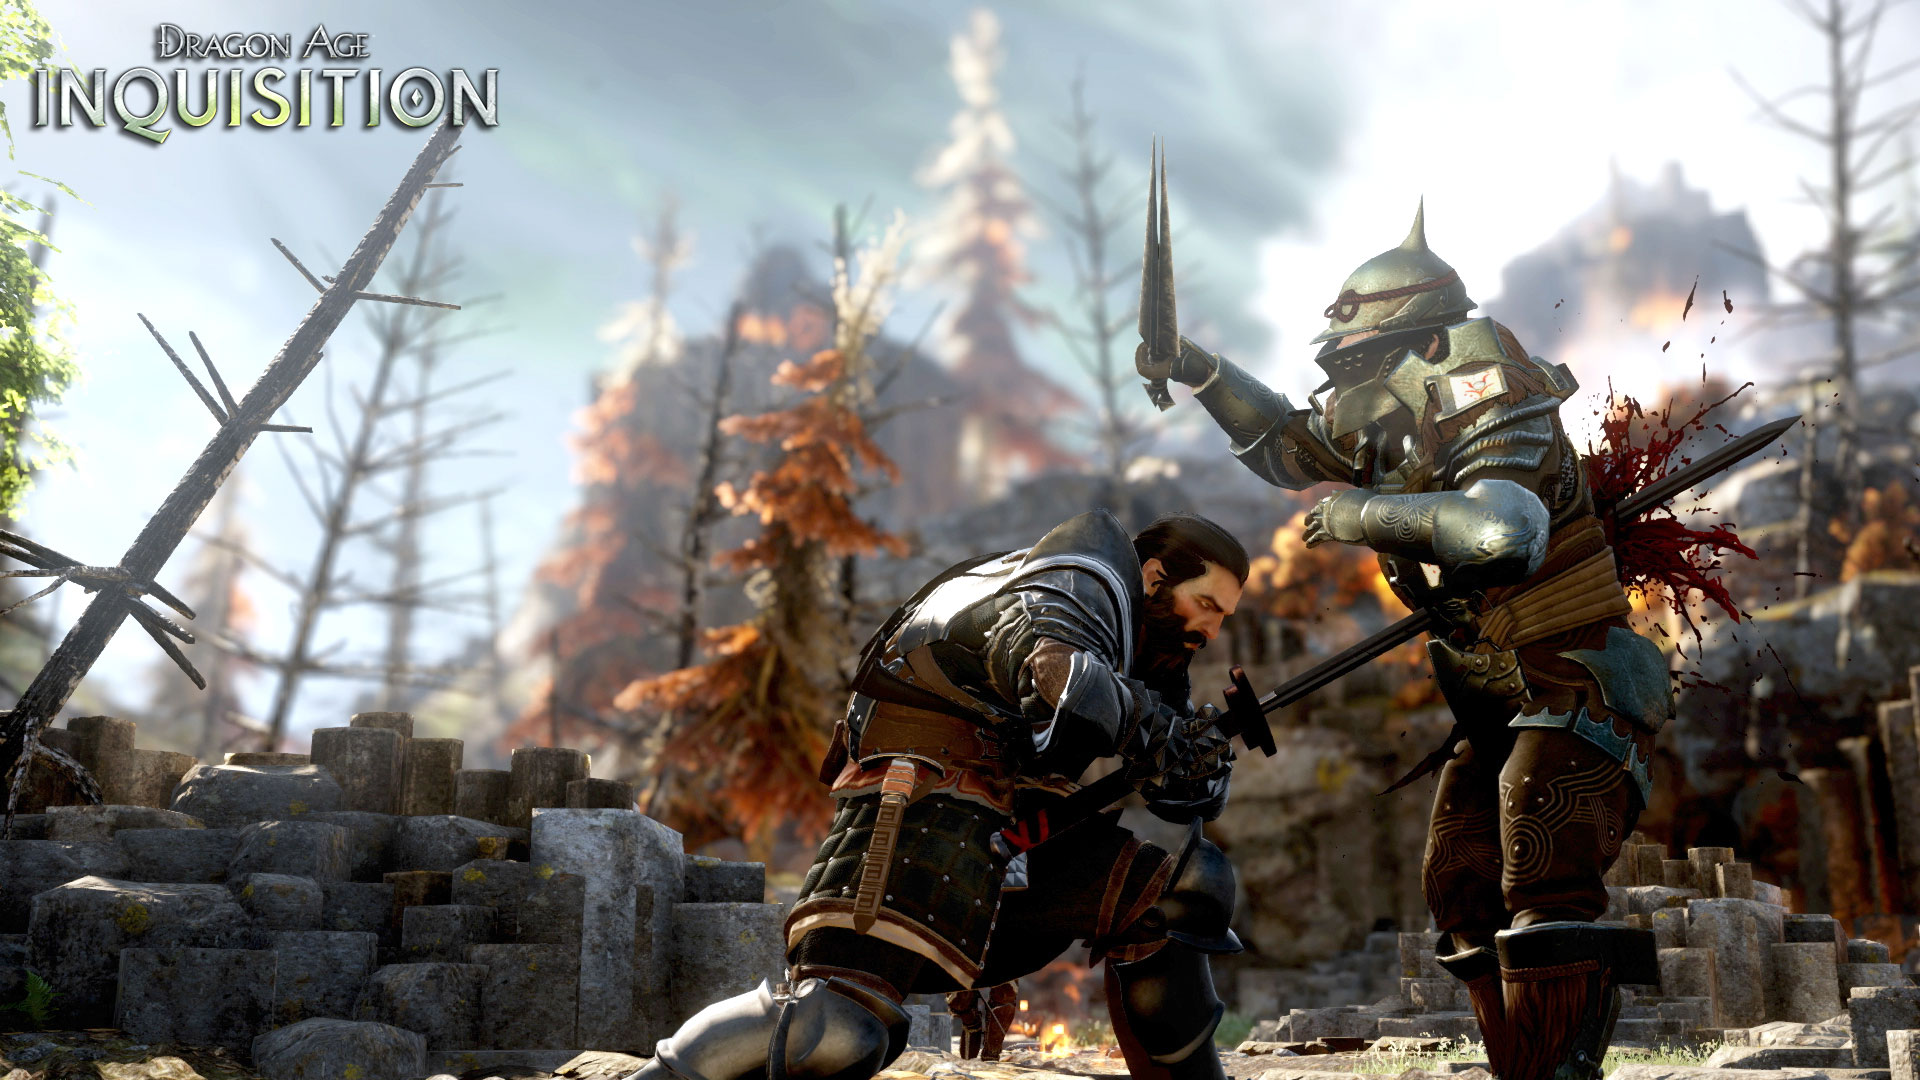 Dragon Age Inquisition llevó el rol de BioWare al E3 2014